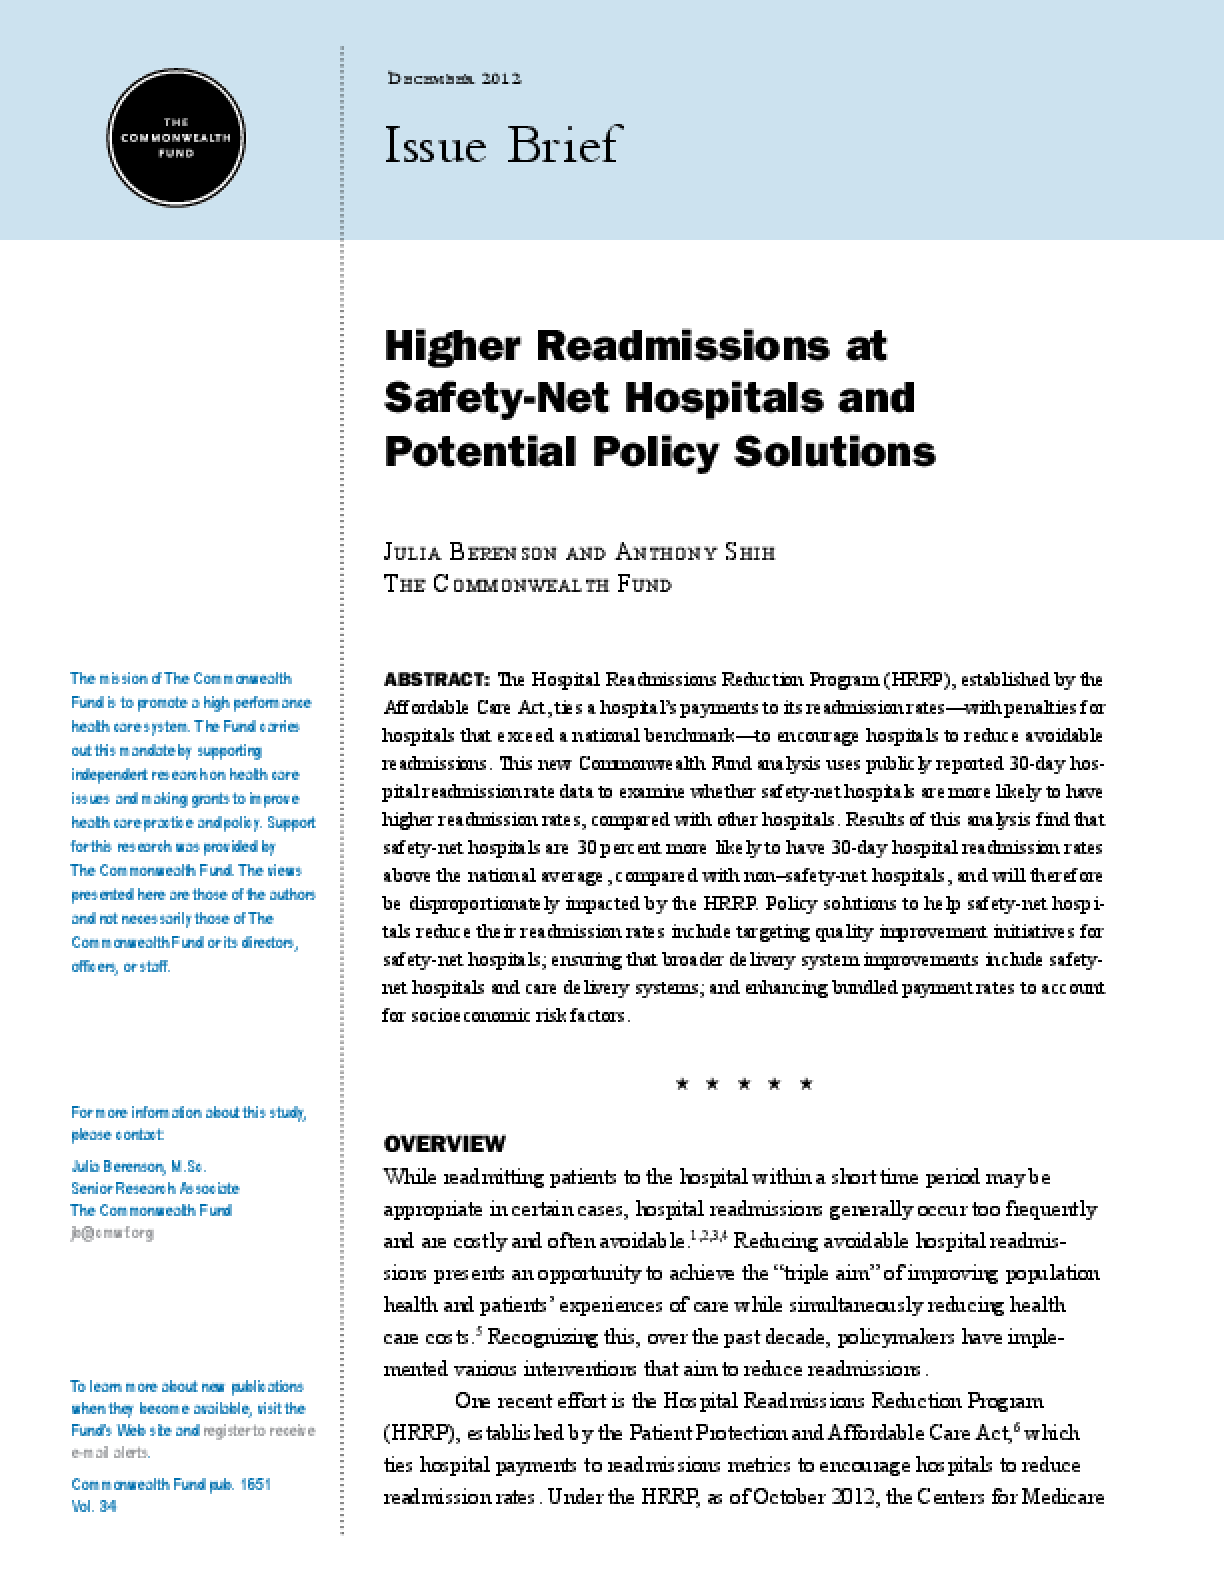 Higher Readmissions at Safety-Net Hospitals and Potential Policy Solutions